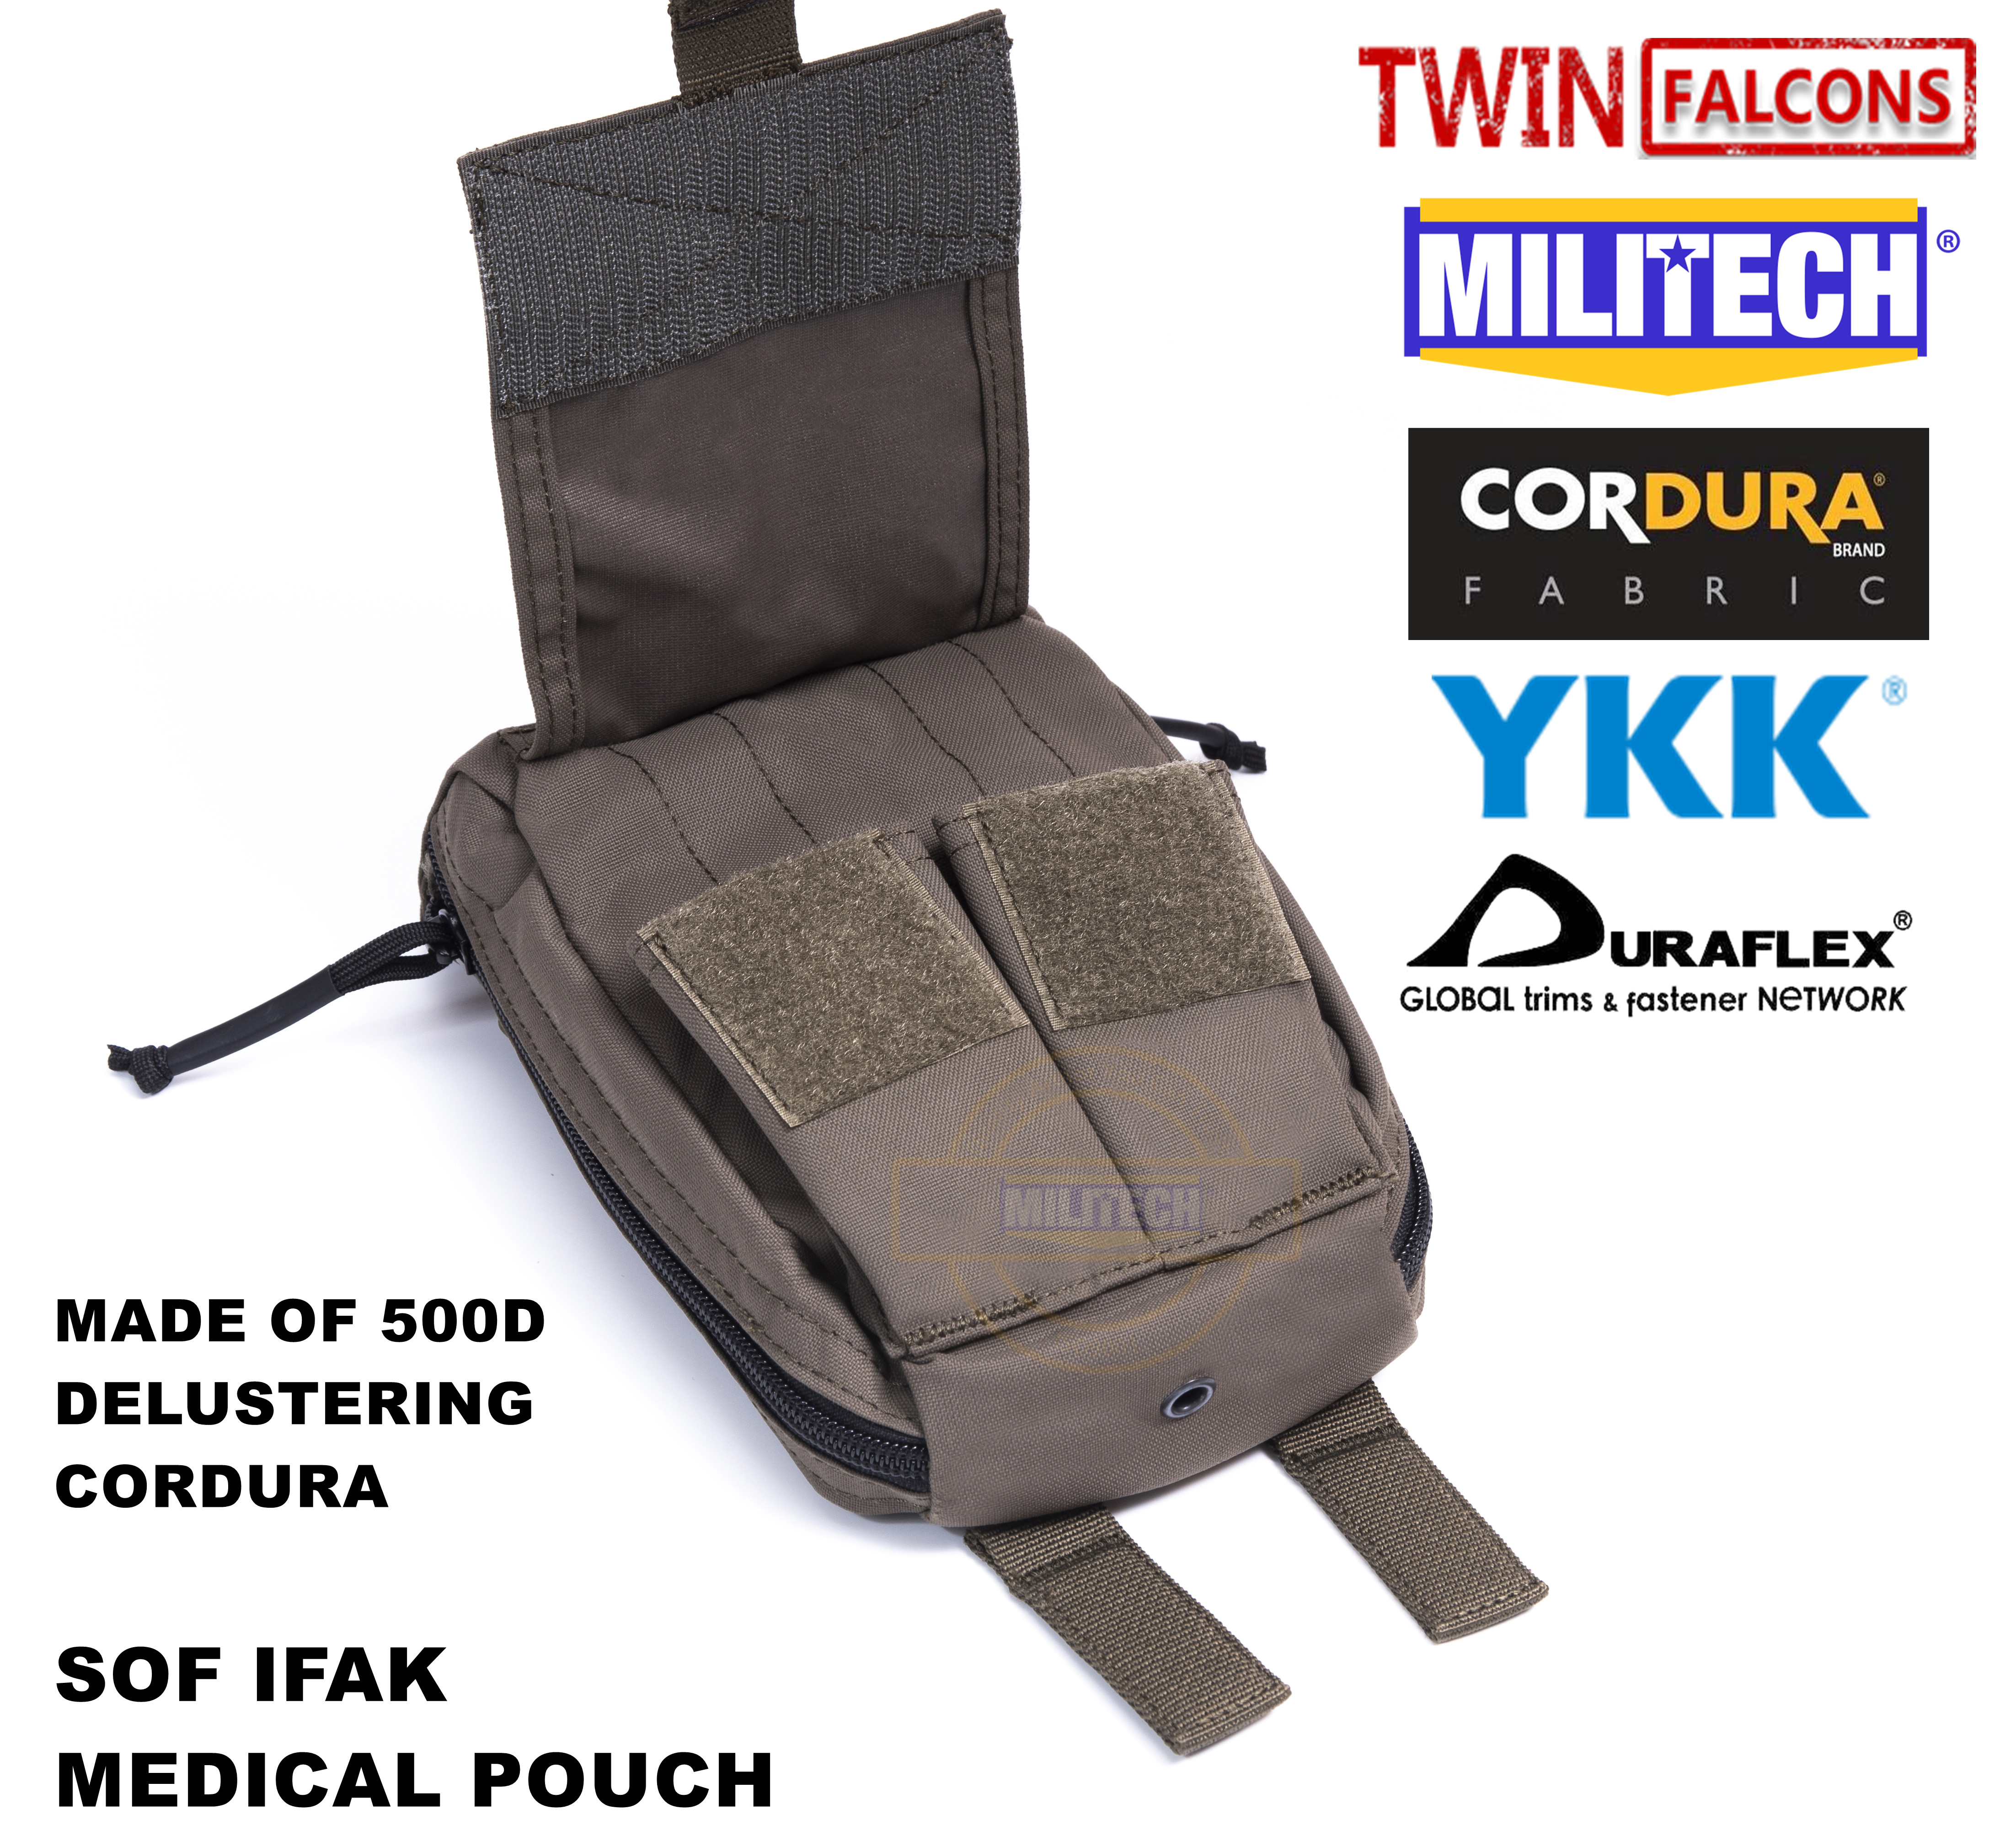 MILITECH TWINFALCONS TW Delustered TYR MOLLE Trauma Medical First Aid Kit Pouch EMT Pouch CORDURA Modular SOF IFAK Medical Pouch